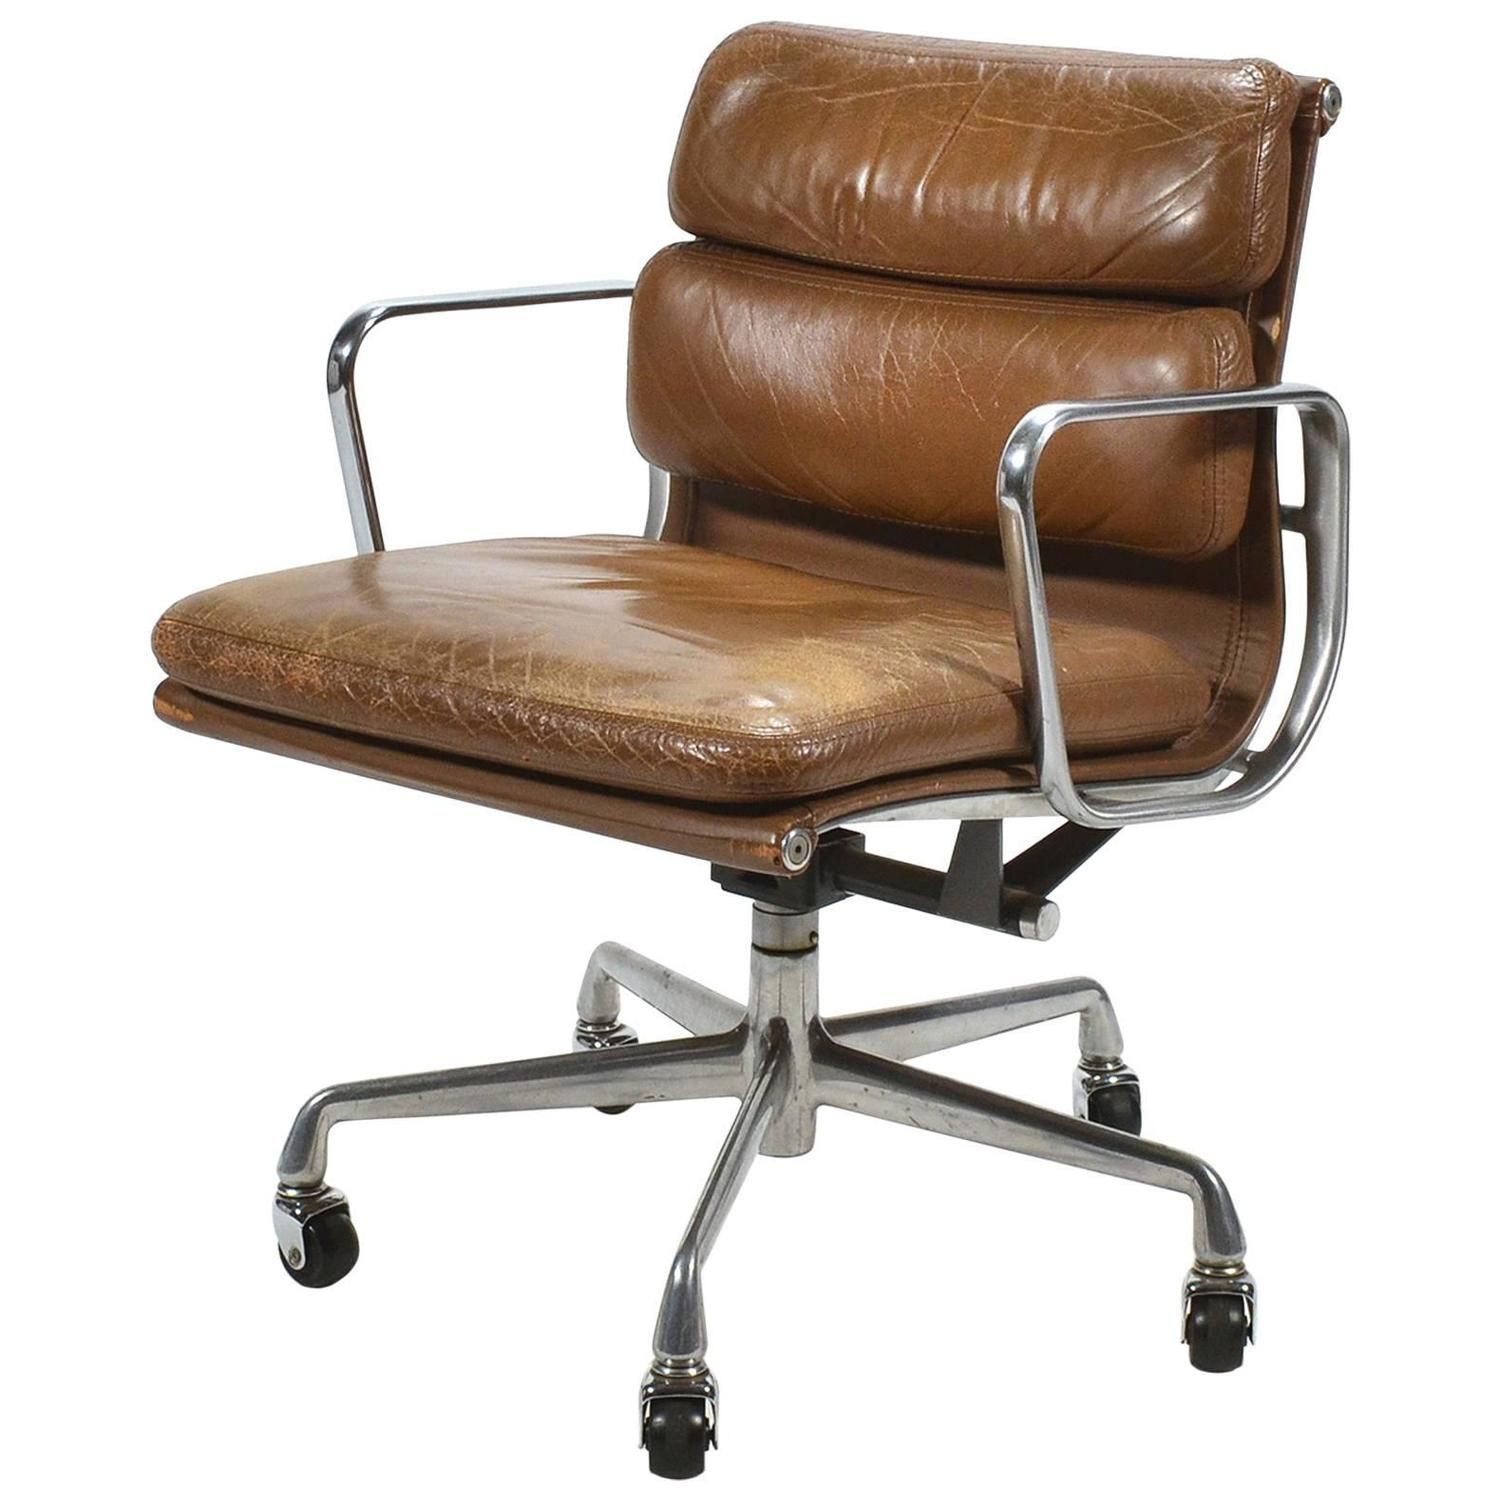 Eames Aluminium Group Soft Pad Management Chair By Herman Miller Chair Eames Wire Chairs Eames